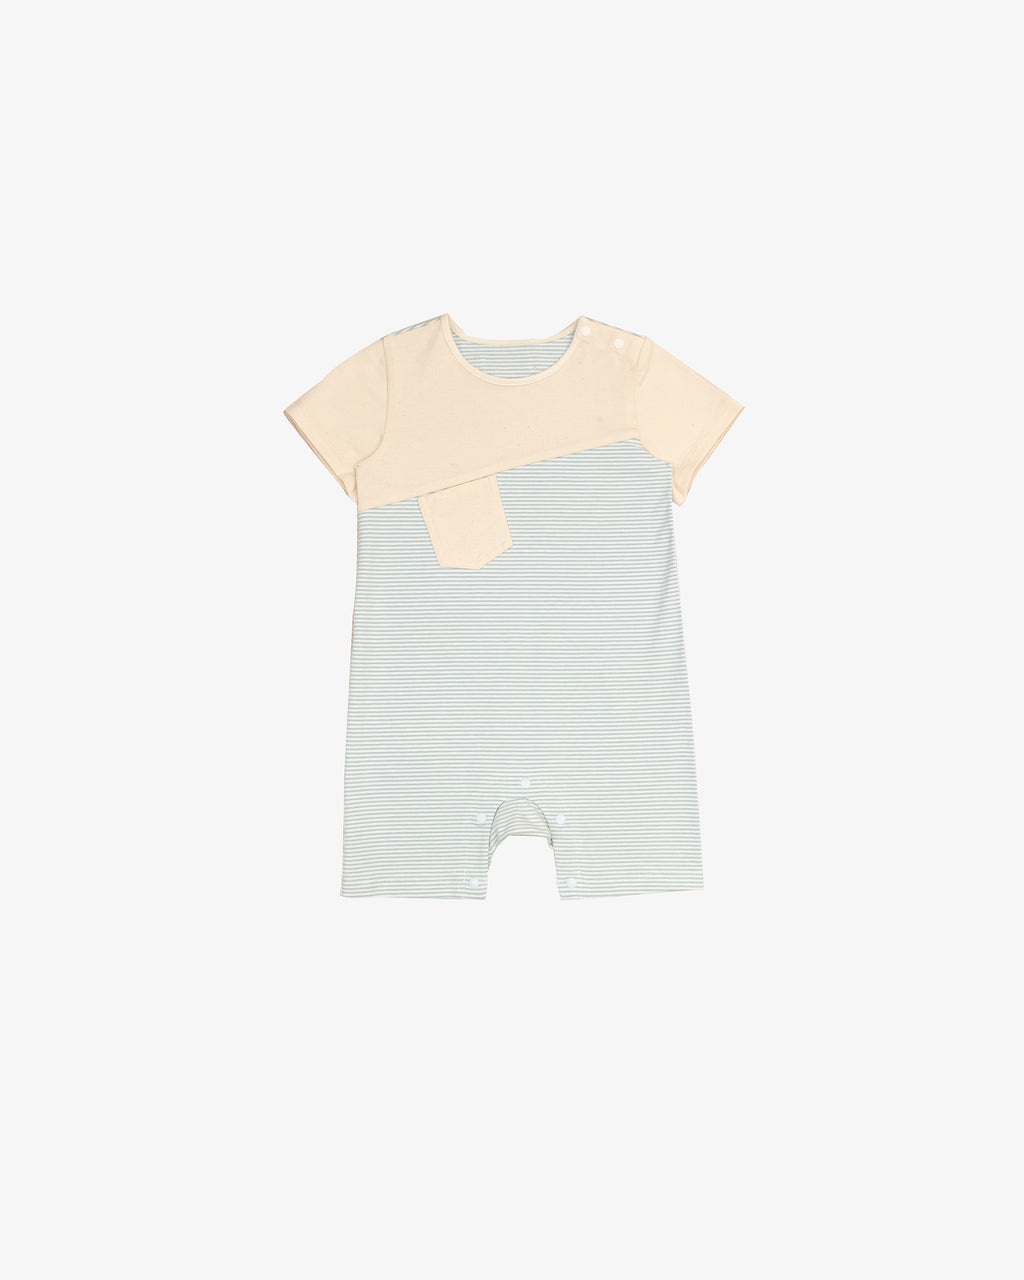 ANGLED BABY ROMPER